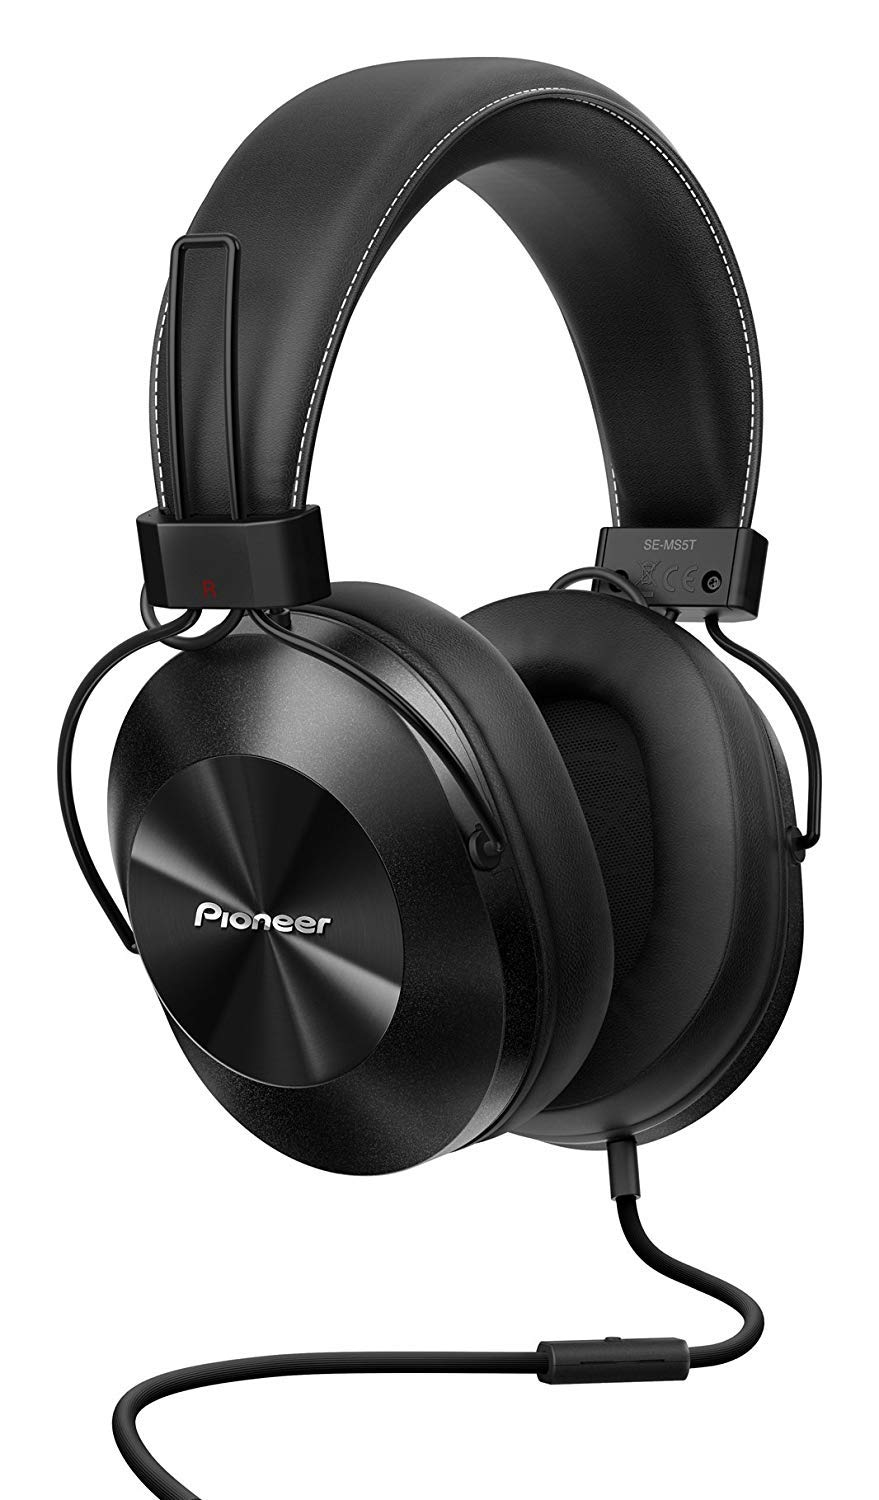 Pioneer-Abs-Metallic-Housing-with-Leather-Headphone